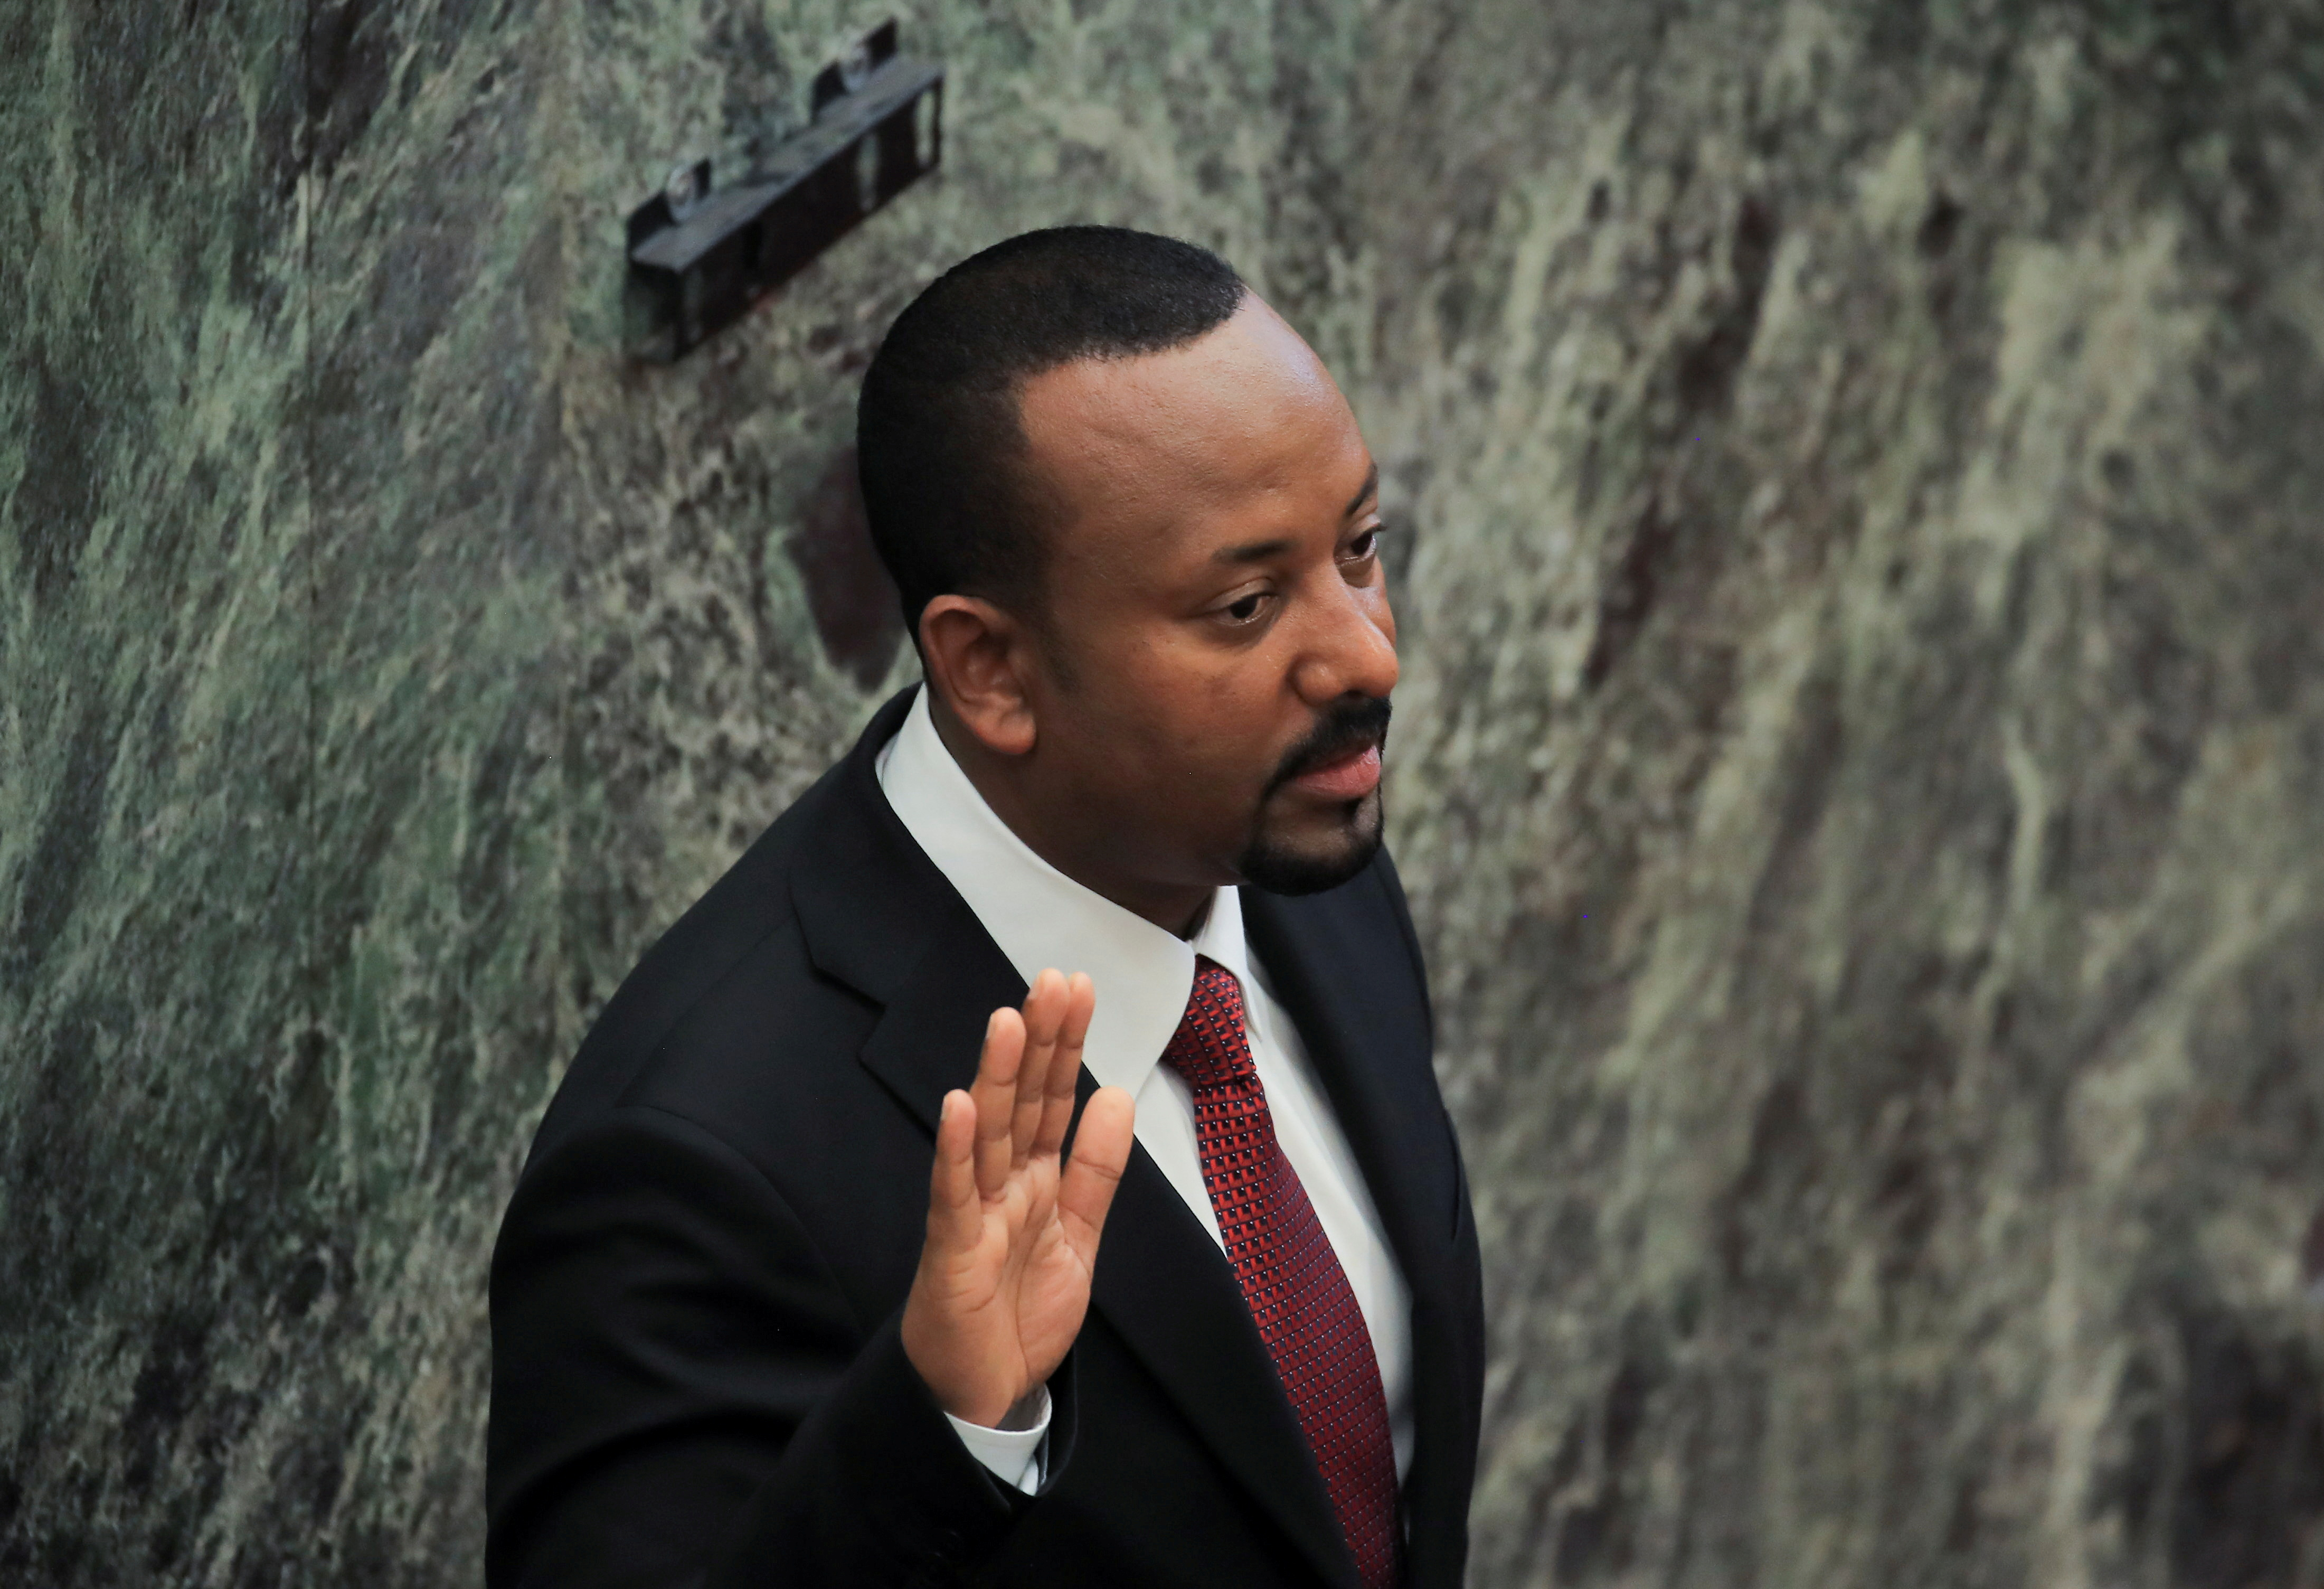 Ethiopia's Prime Minister Abiy Ahmed takes oath during his incumbent ceremony at the Parliament building in Addis Ababa, Ethiopia October 4, 2021. REUTERS/Tiksa Negeri/File Photo